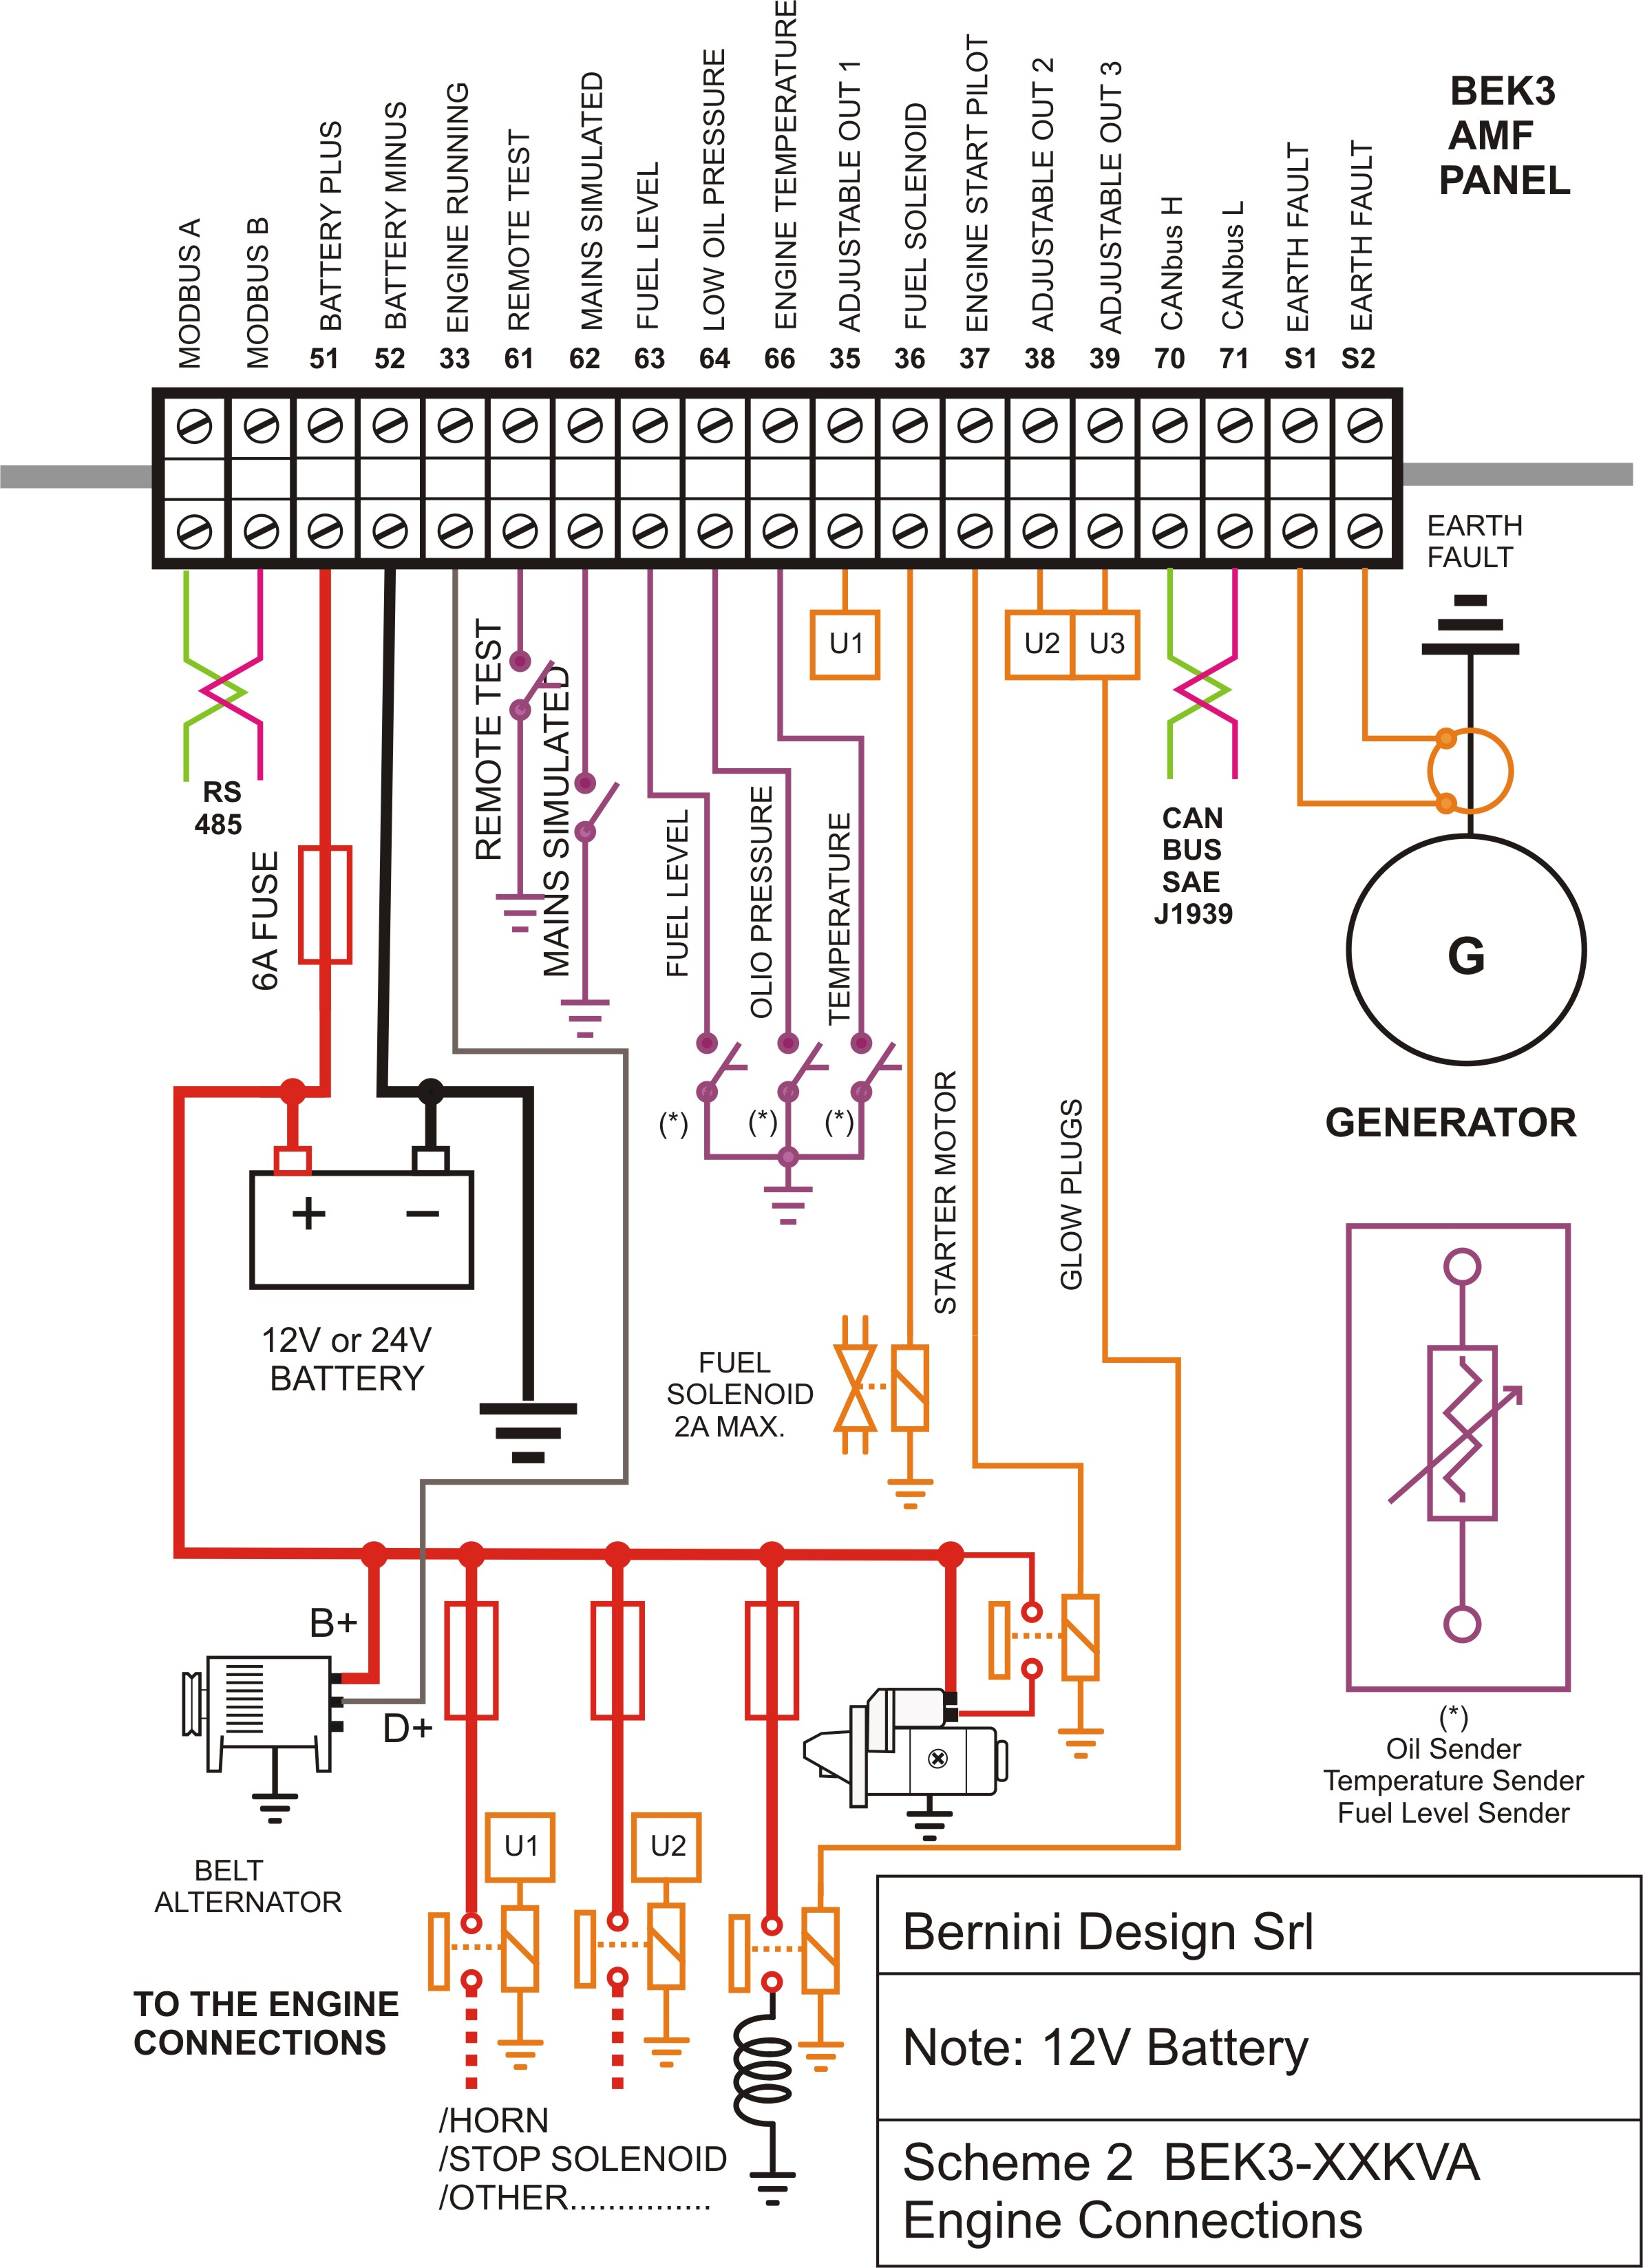 Diesel Generator Control Panel Wiring Diagram Engine Connections?resized665%2C9186ssld1 caterpillar generator schematic diagram efcaviation com Caterpillar SR4B Model Specification Sheet at beritabola.co